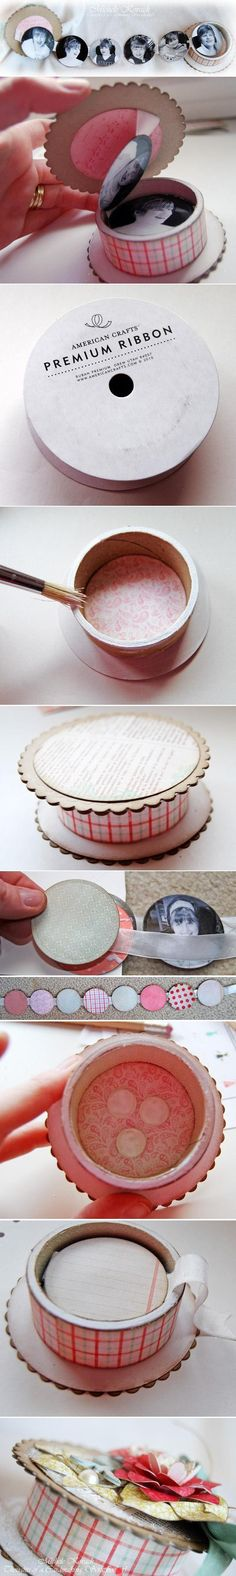 So cute and who doesn't have these ribbon spools ...